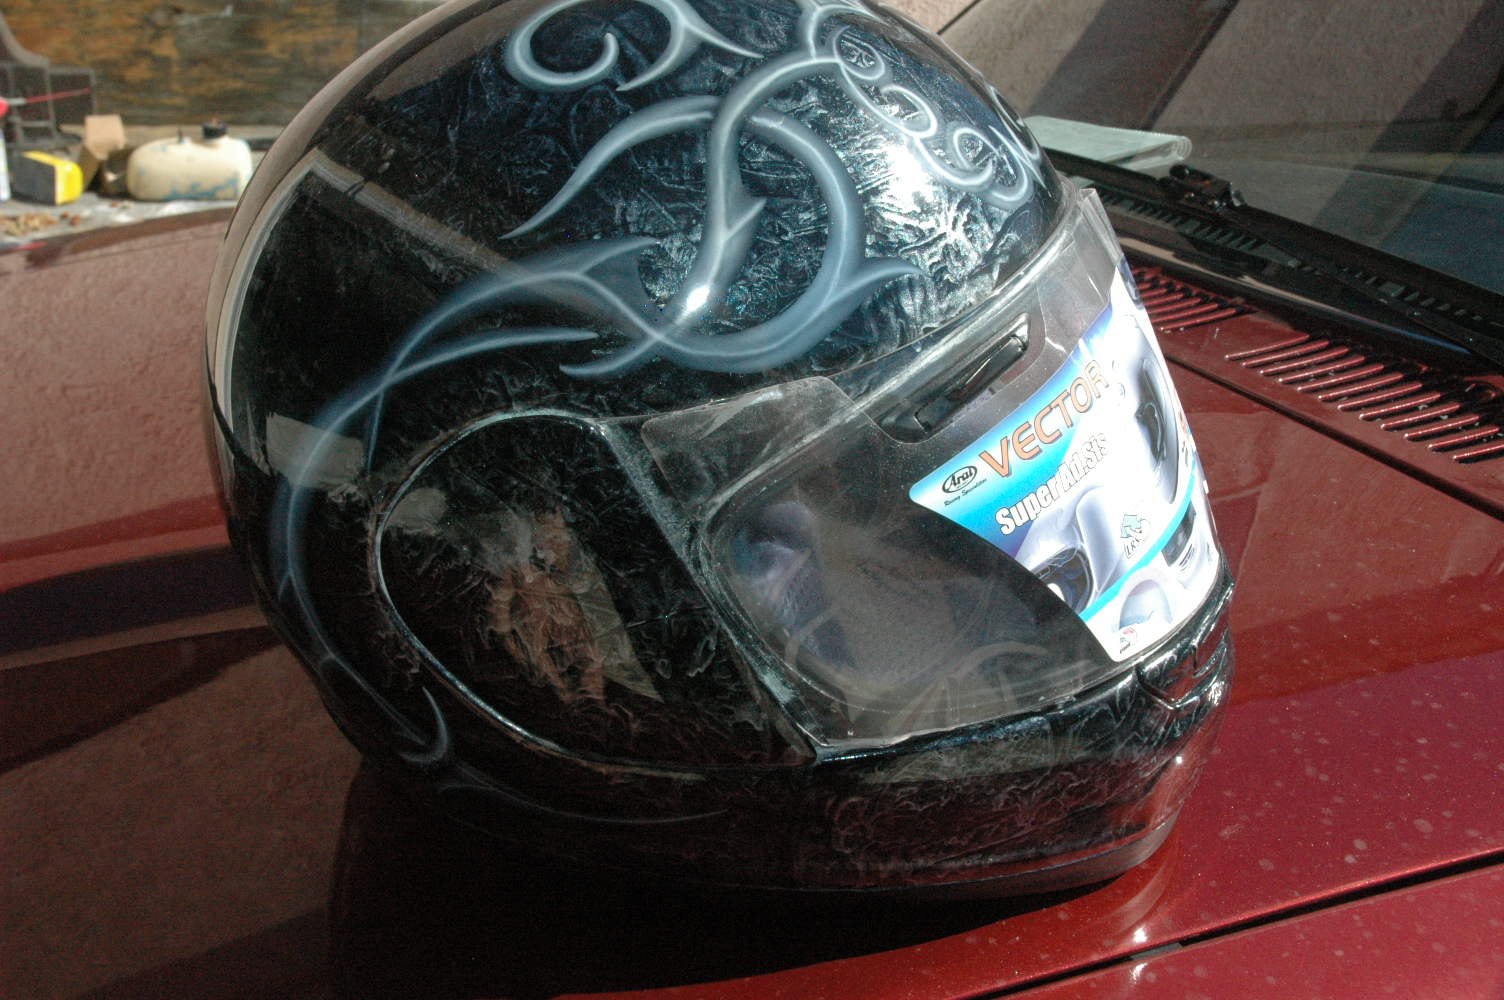 Custom Painted Motorcycle Helmets For Women Images Galleries With A Bite